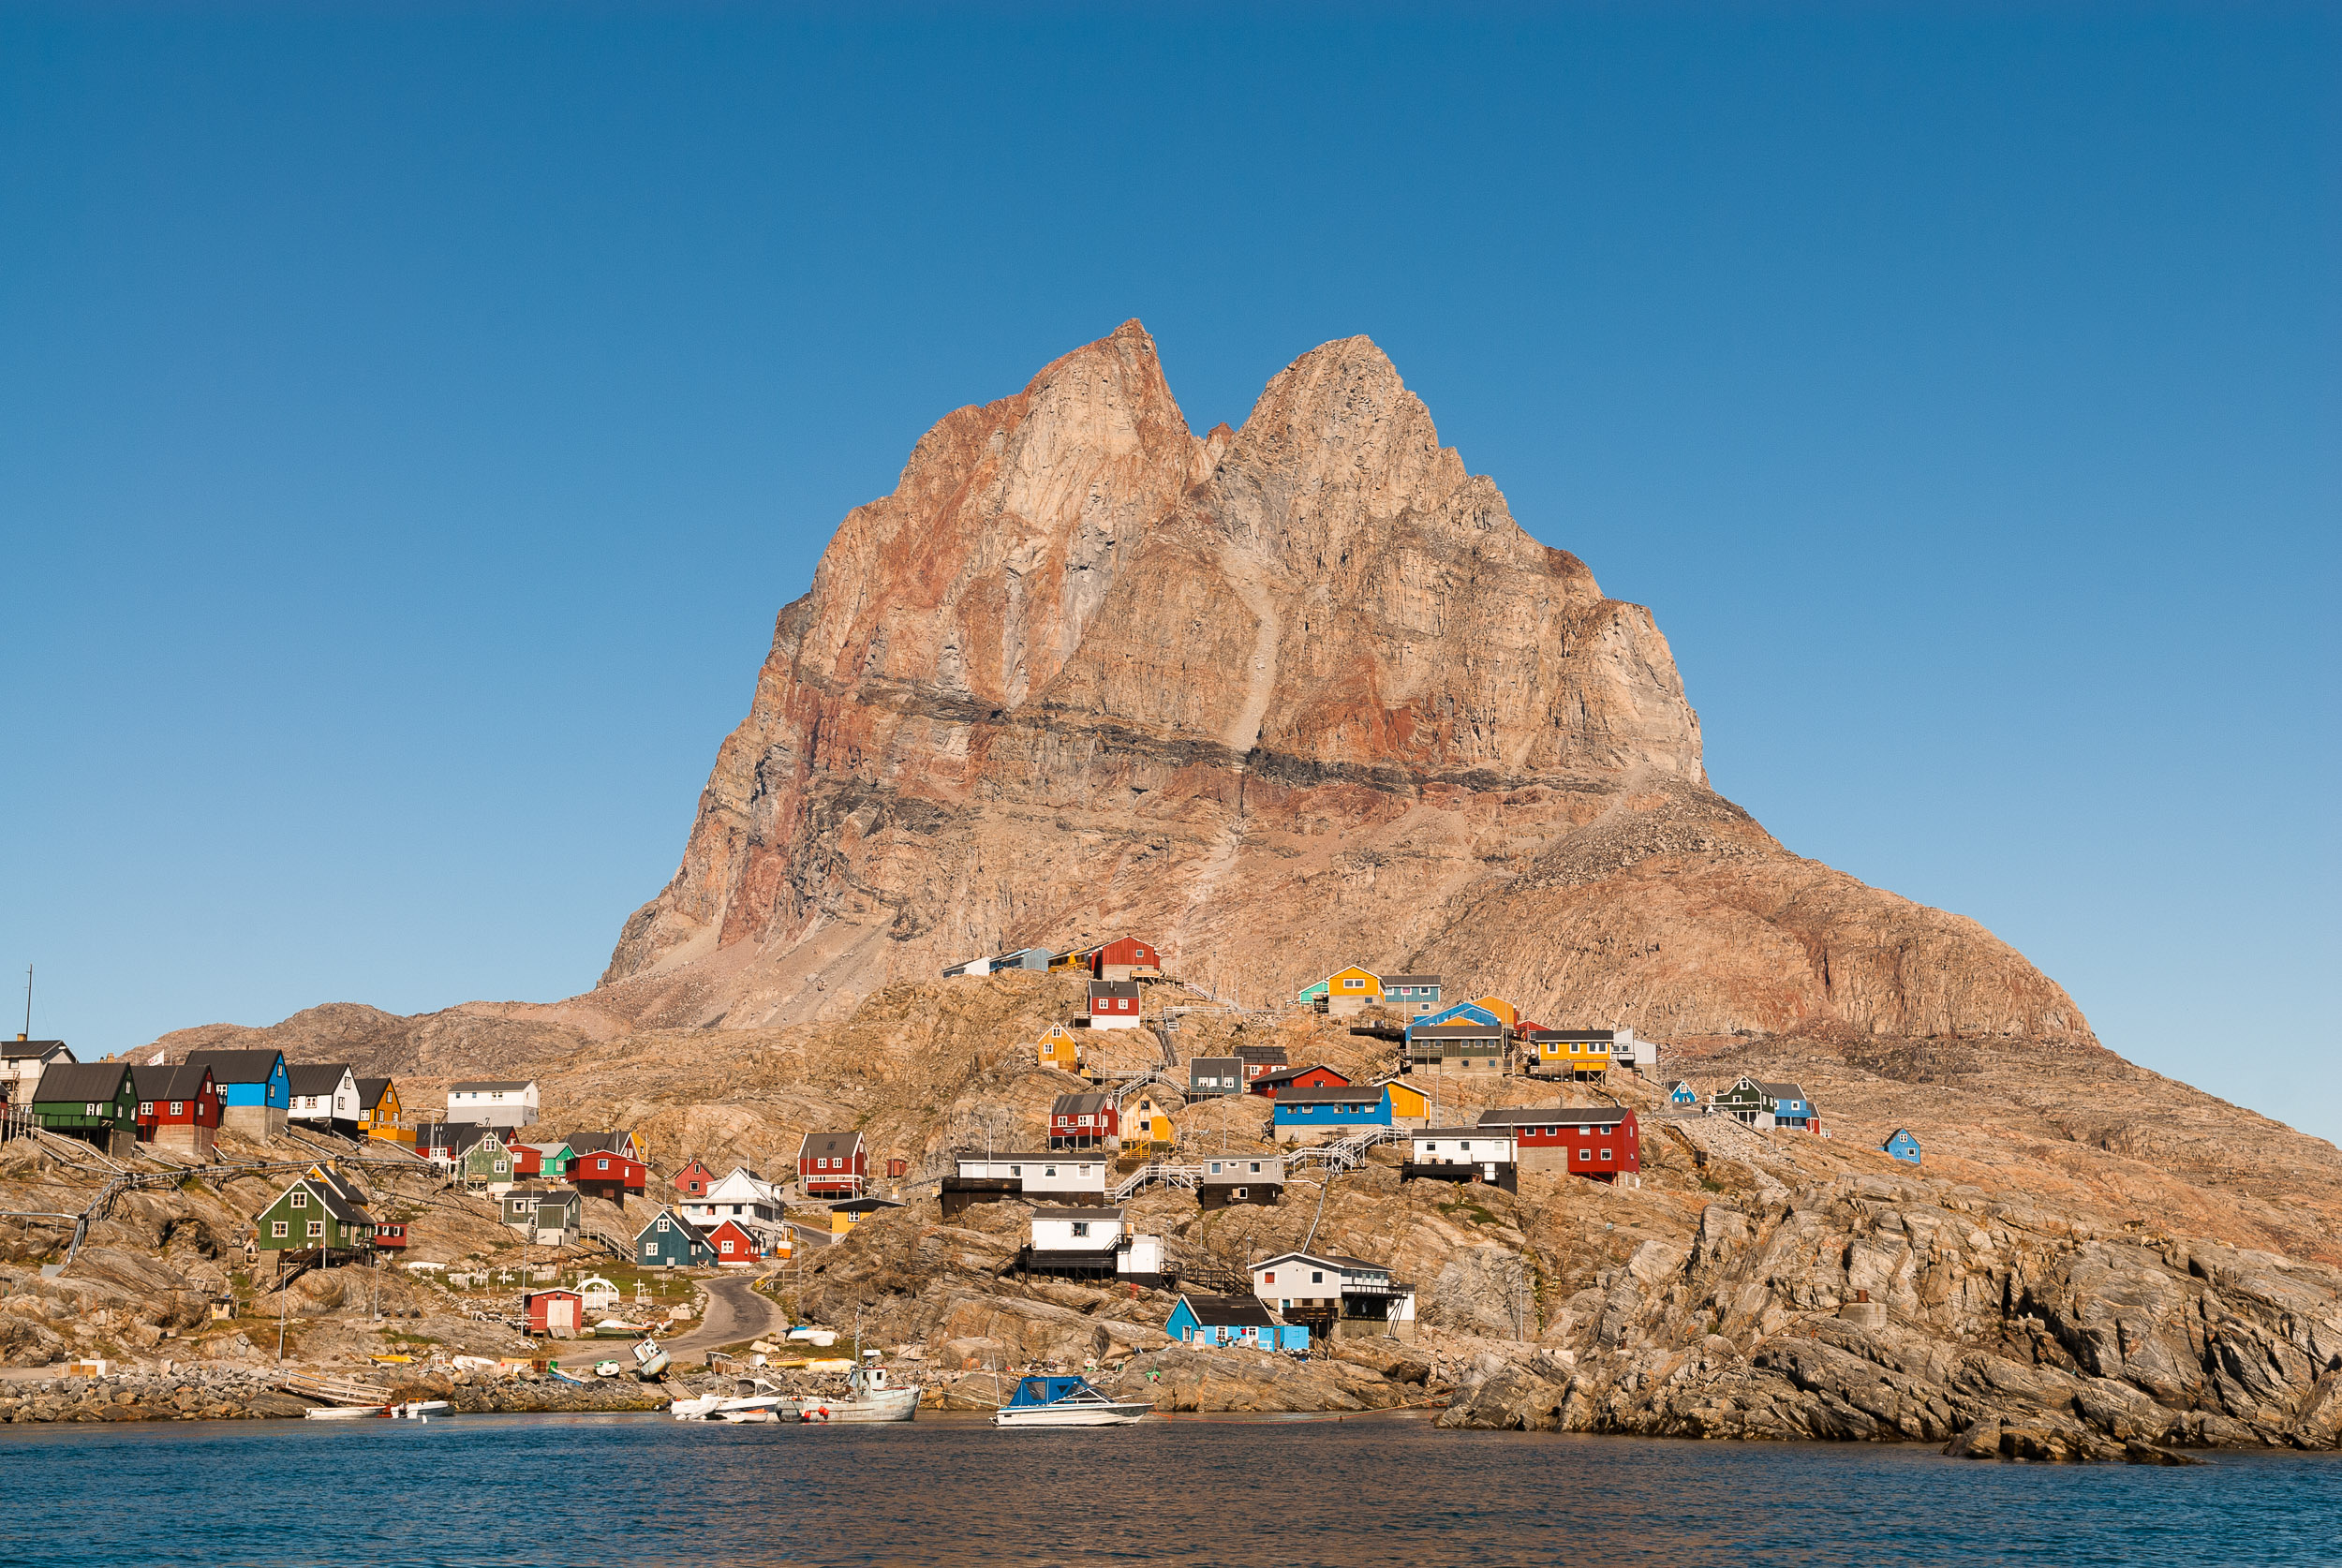 Summer time view of Uummannaq town and Uummannaq Mountain, Greenland. Uummannaq is has Greenland's most northerly ferry terminal and is a base for hunters and fishermen. During winter when the sea ice freezes over, Uummannaq hosts the World Ice Golf Championships.